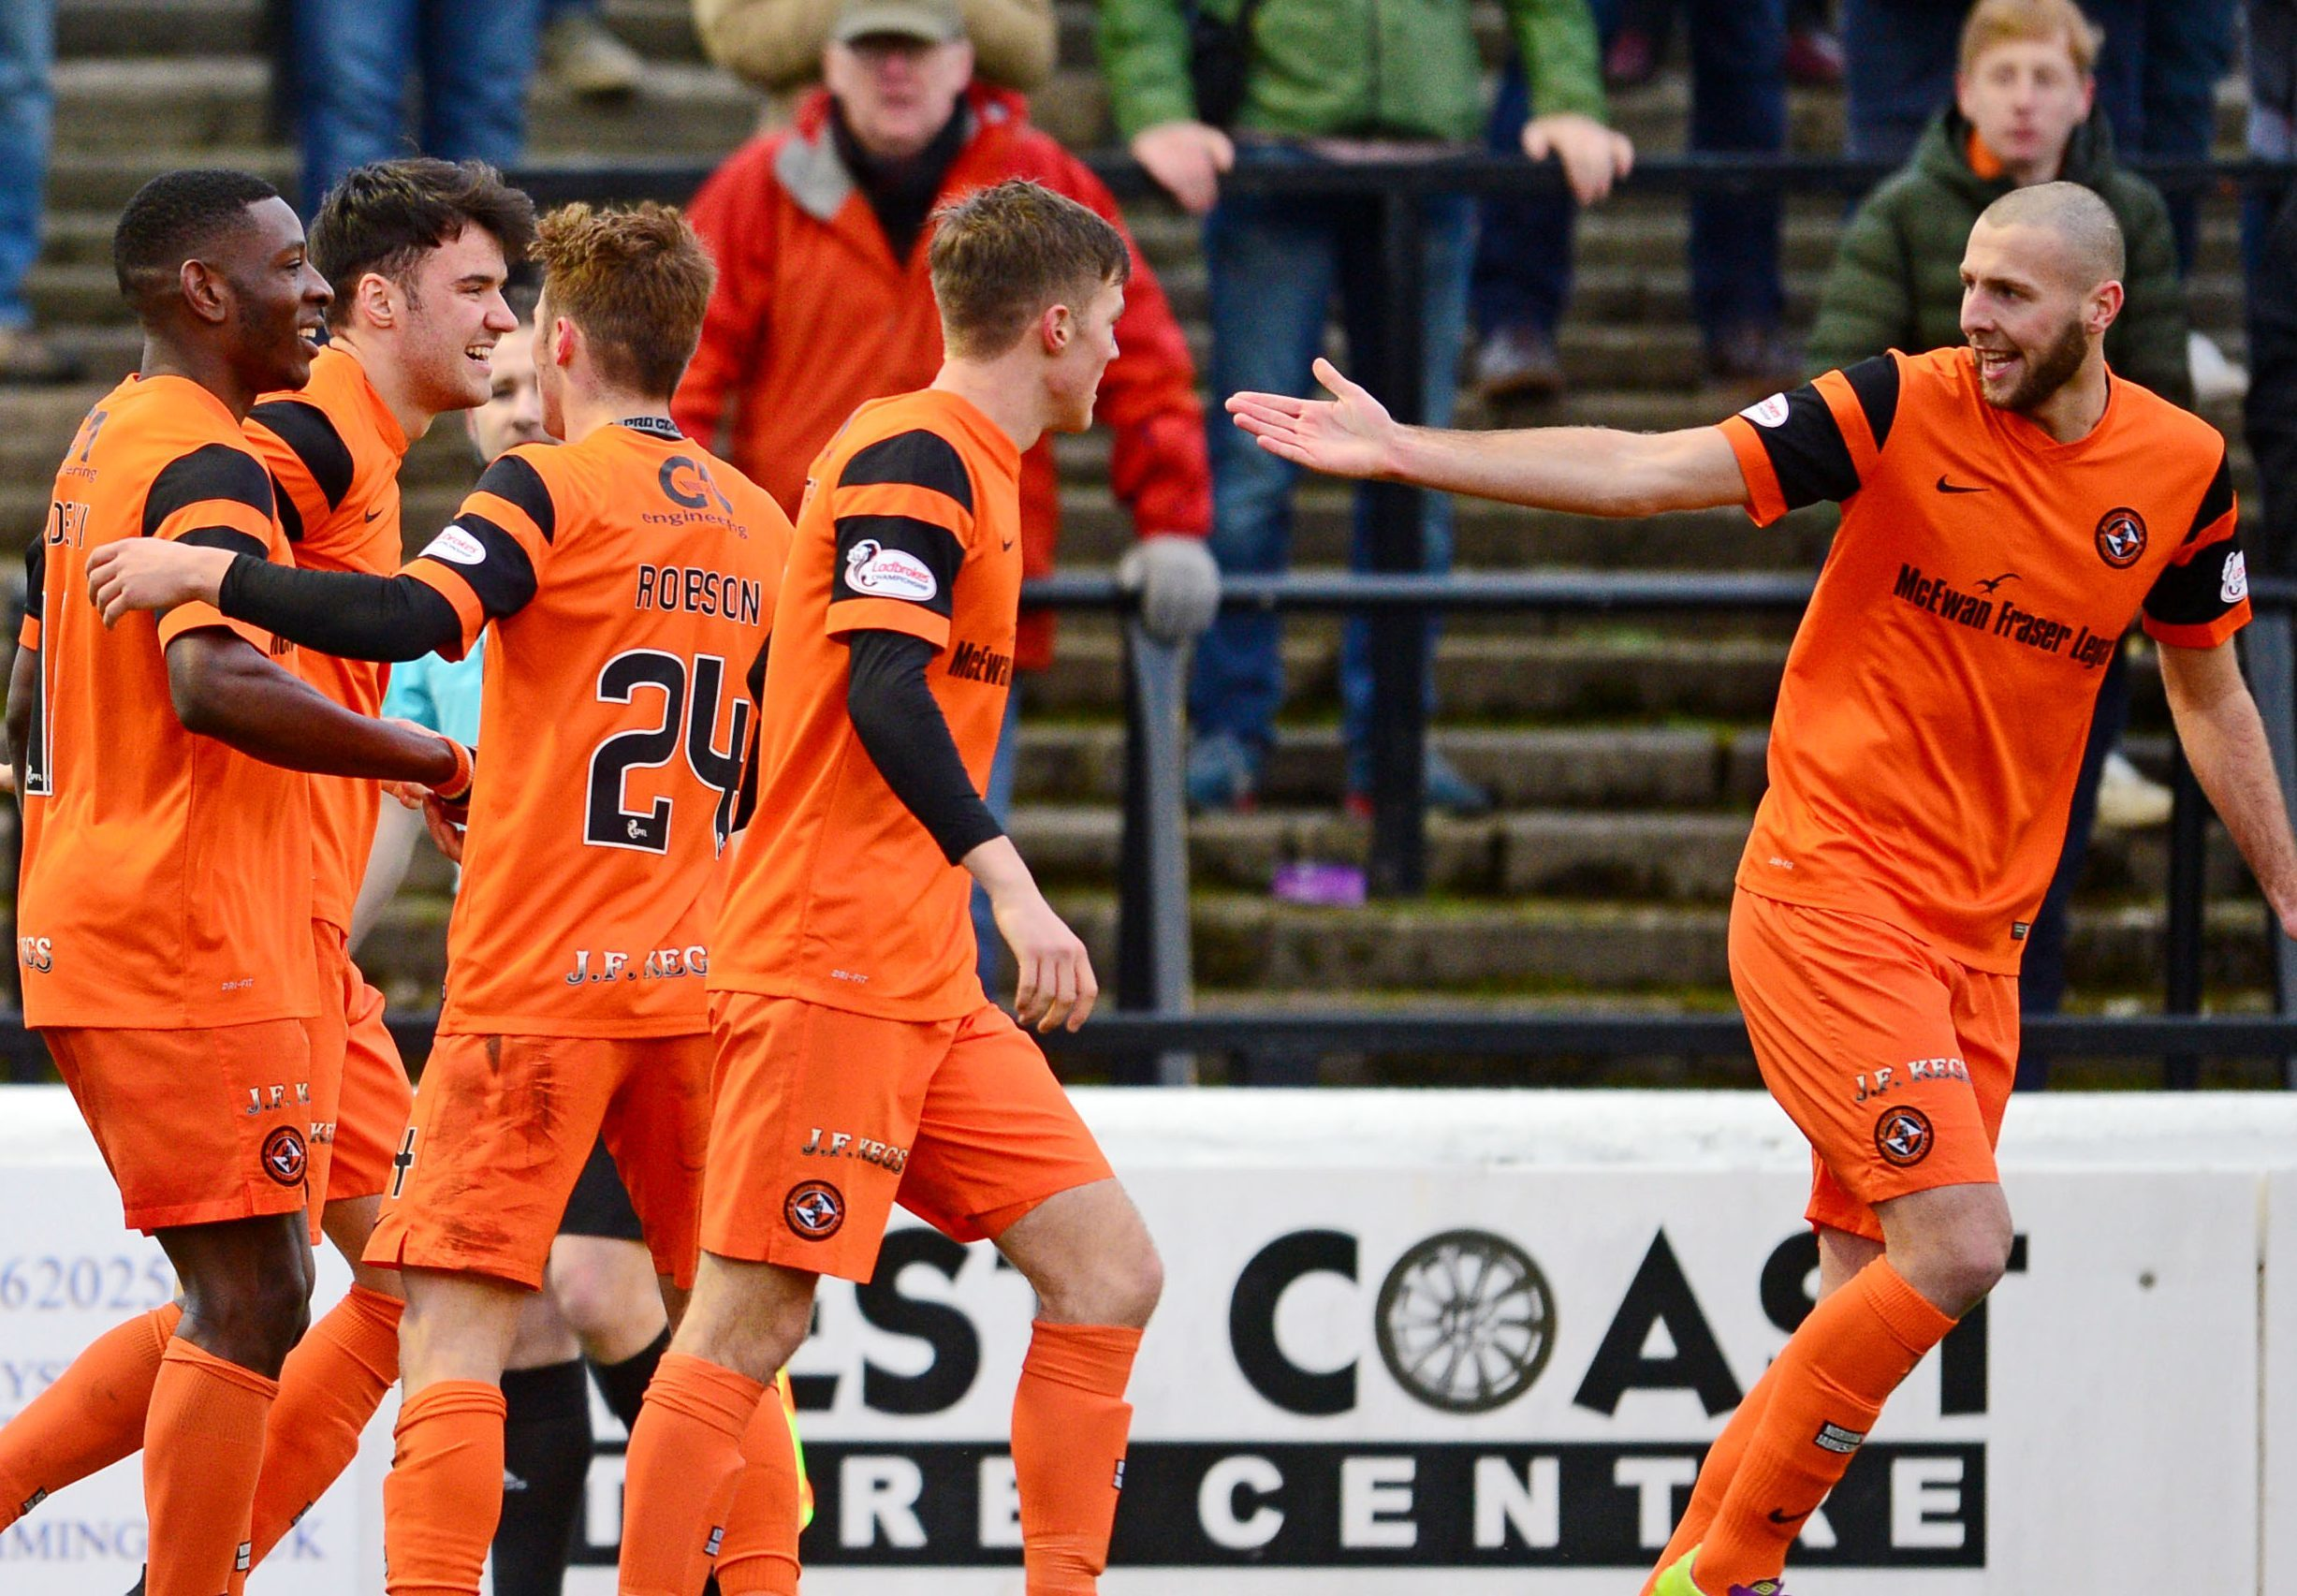 Dundee United celebrate their winning goal at Ayr.